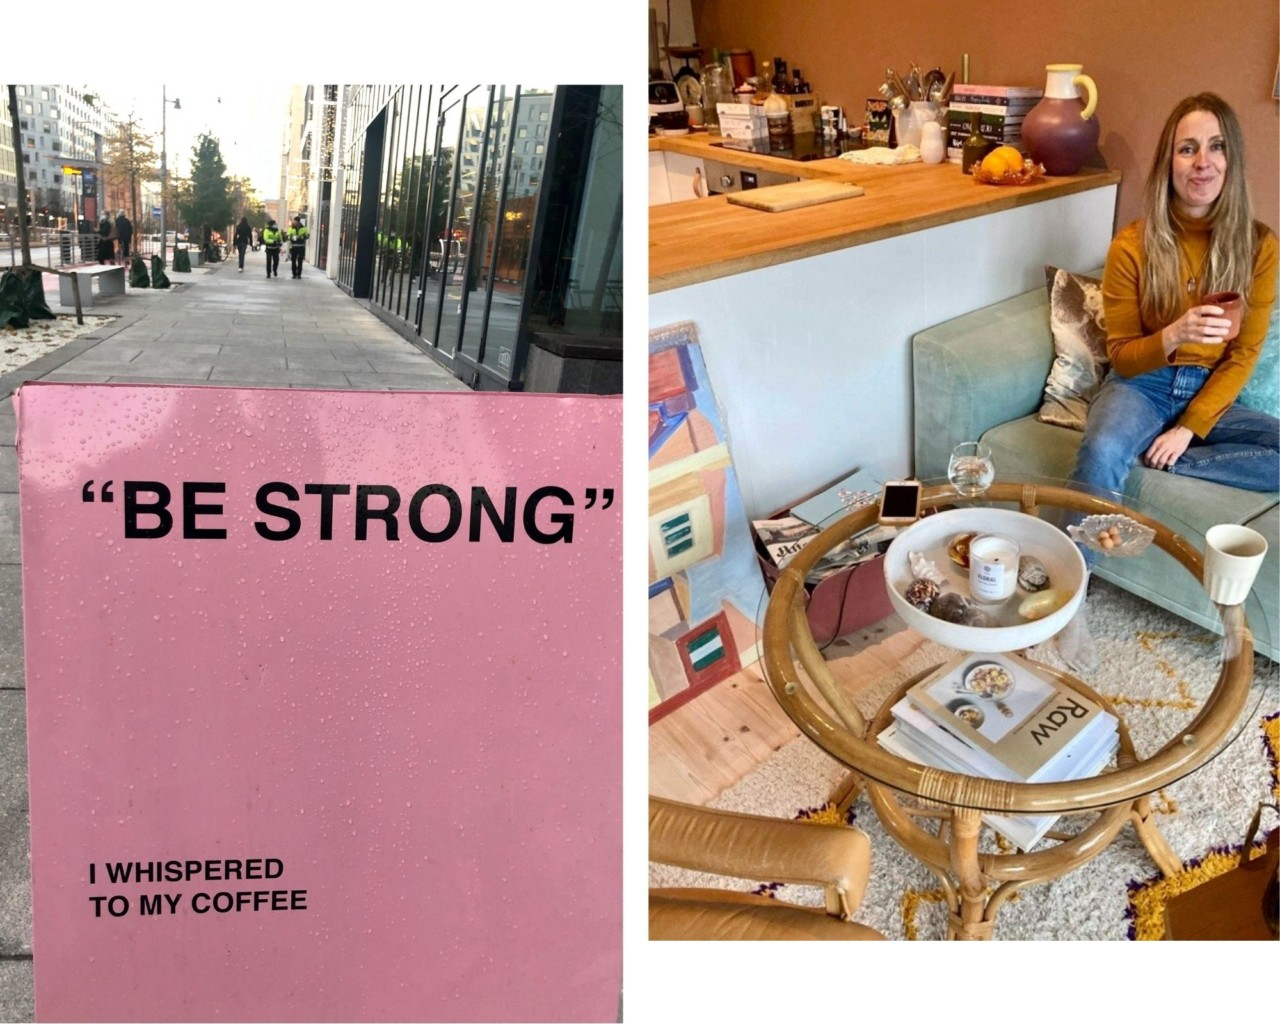 be-strong-i-whispered-to-my-coffee-kaffe-anja-stang